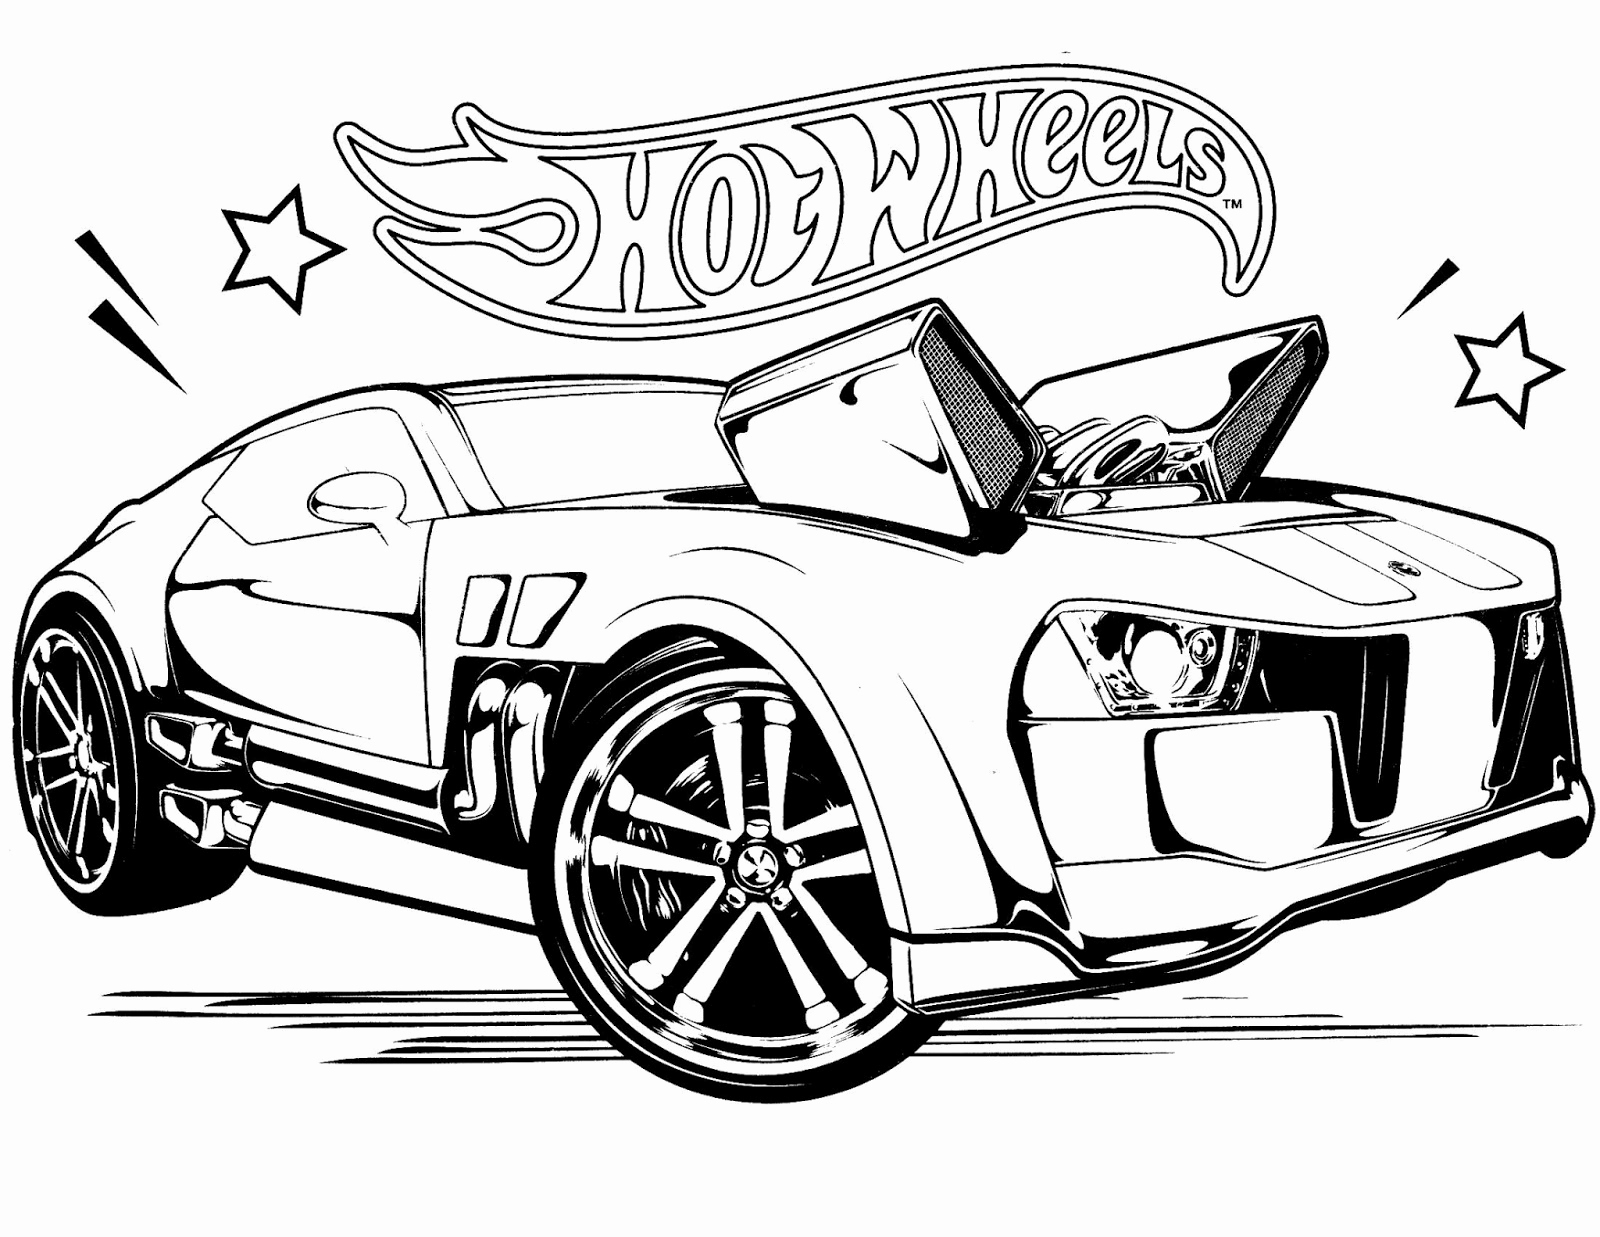 Hot Wheels Racing League Hot Wheels Coloring Pages Set 4 Hot Rod Printable Of Coloring Books and Pages Simple Hot Rod Coloring Pages Pinterest Printable